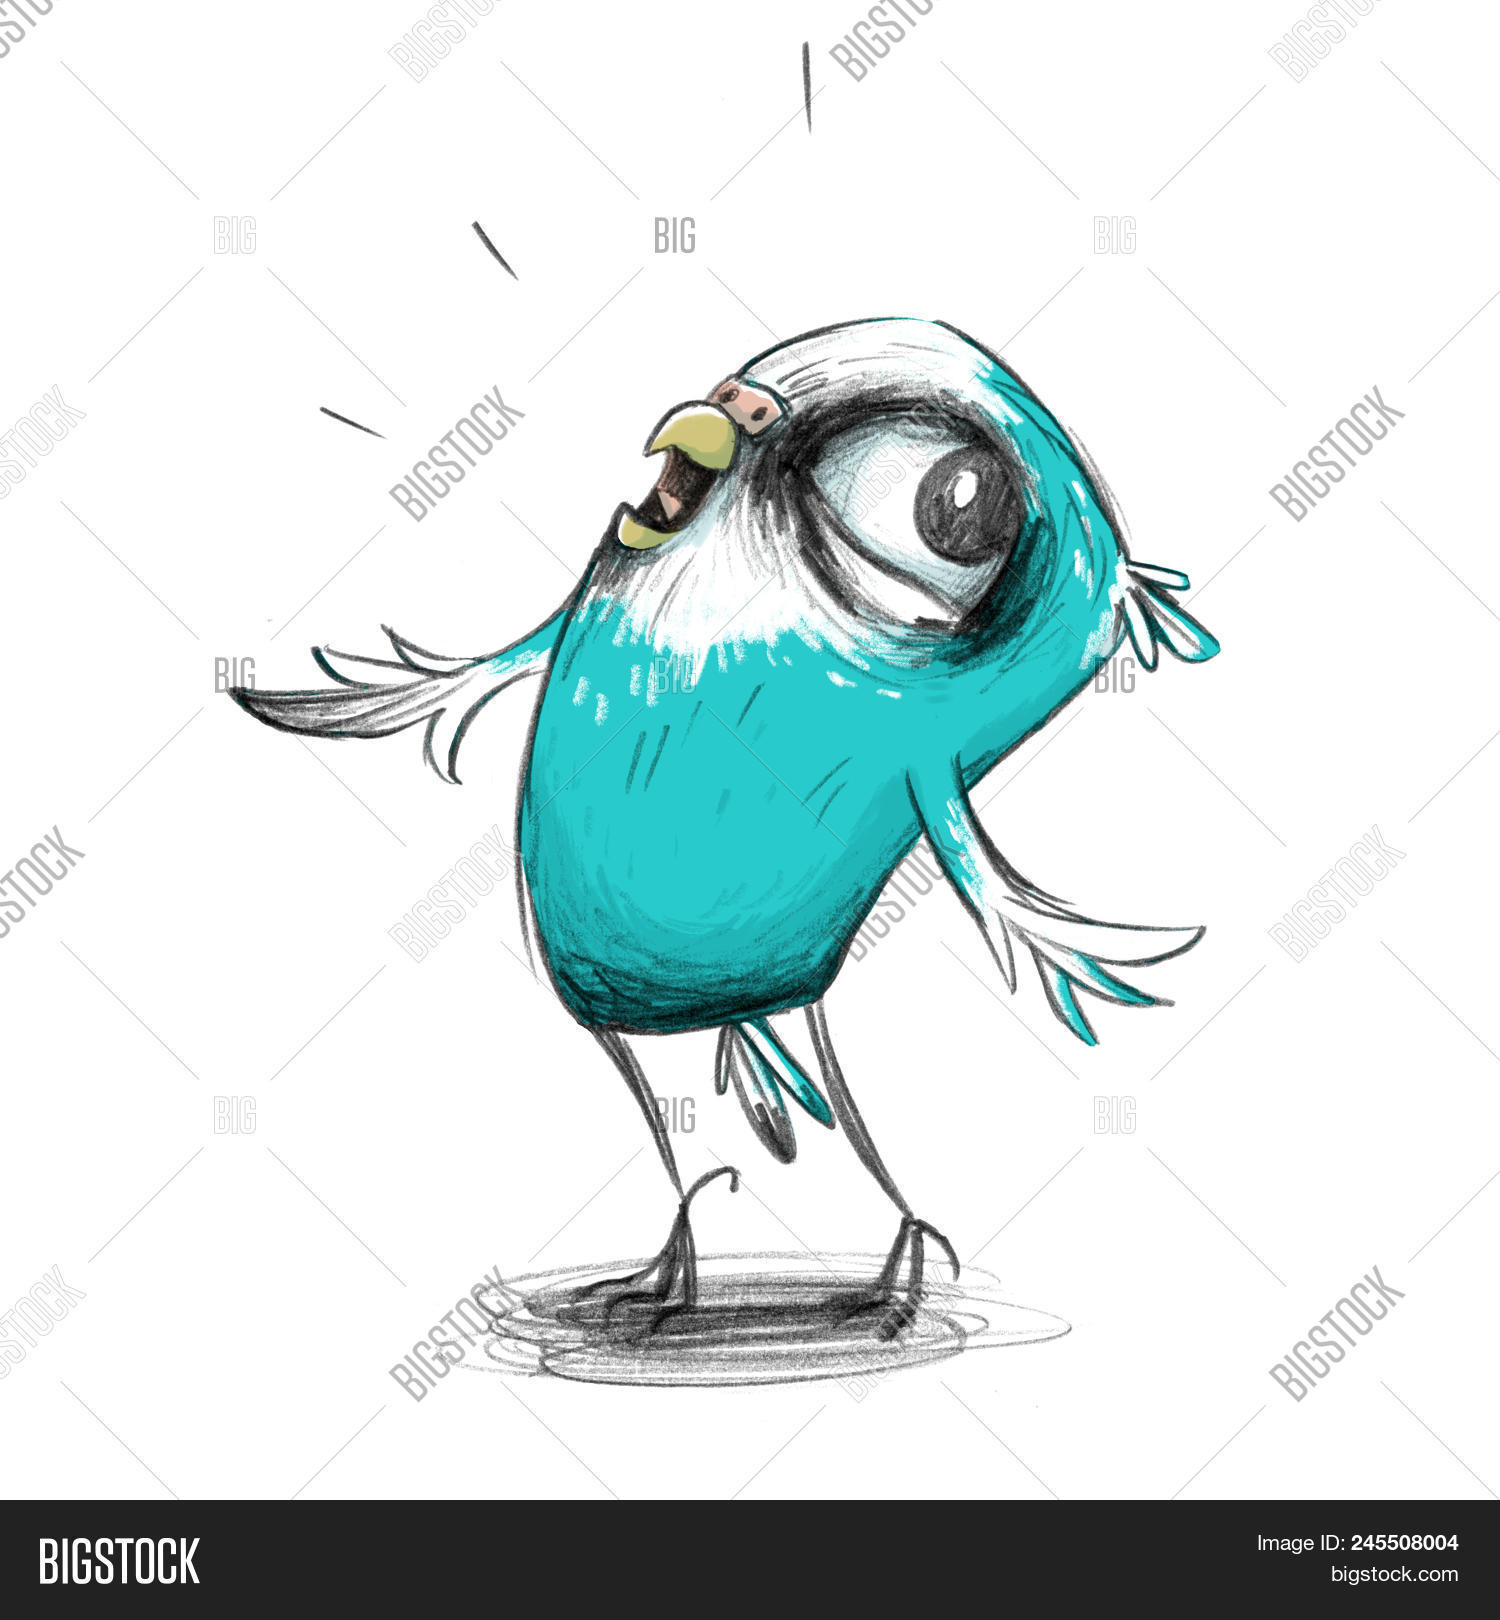 Cute Cartoon Budgie Image & Photo (Free Trial) | Bigstock